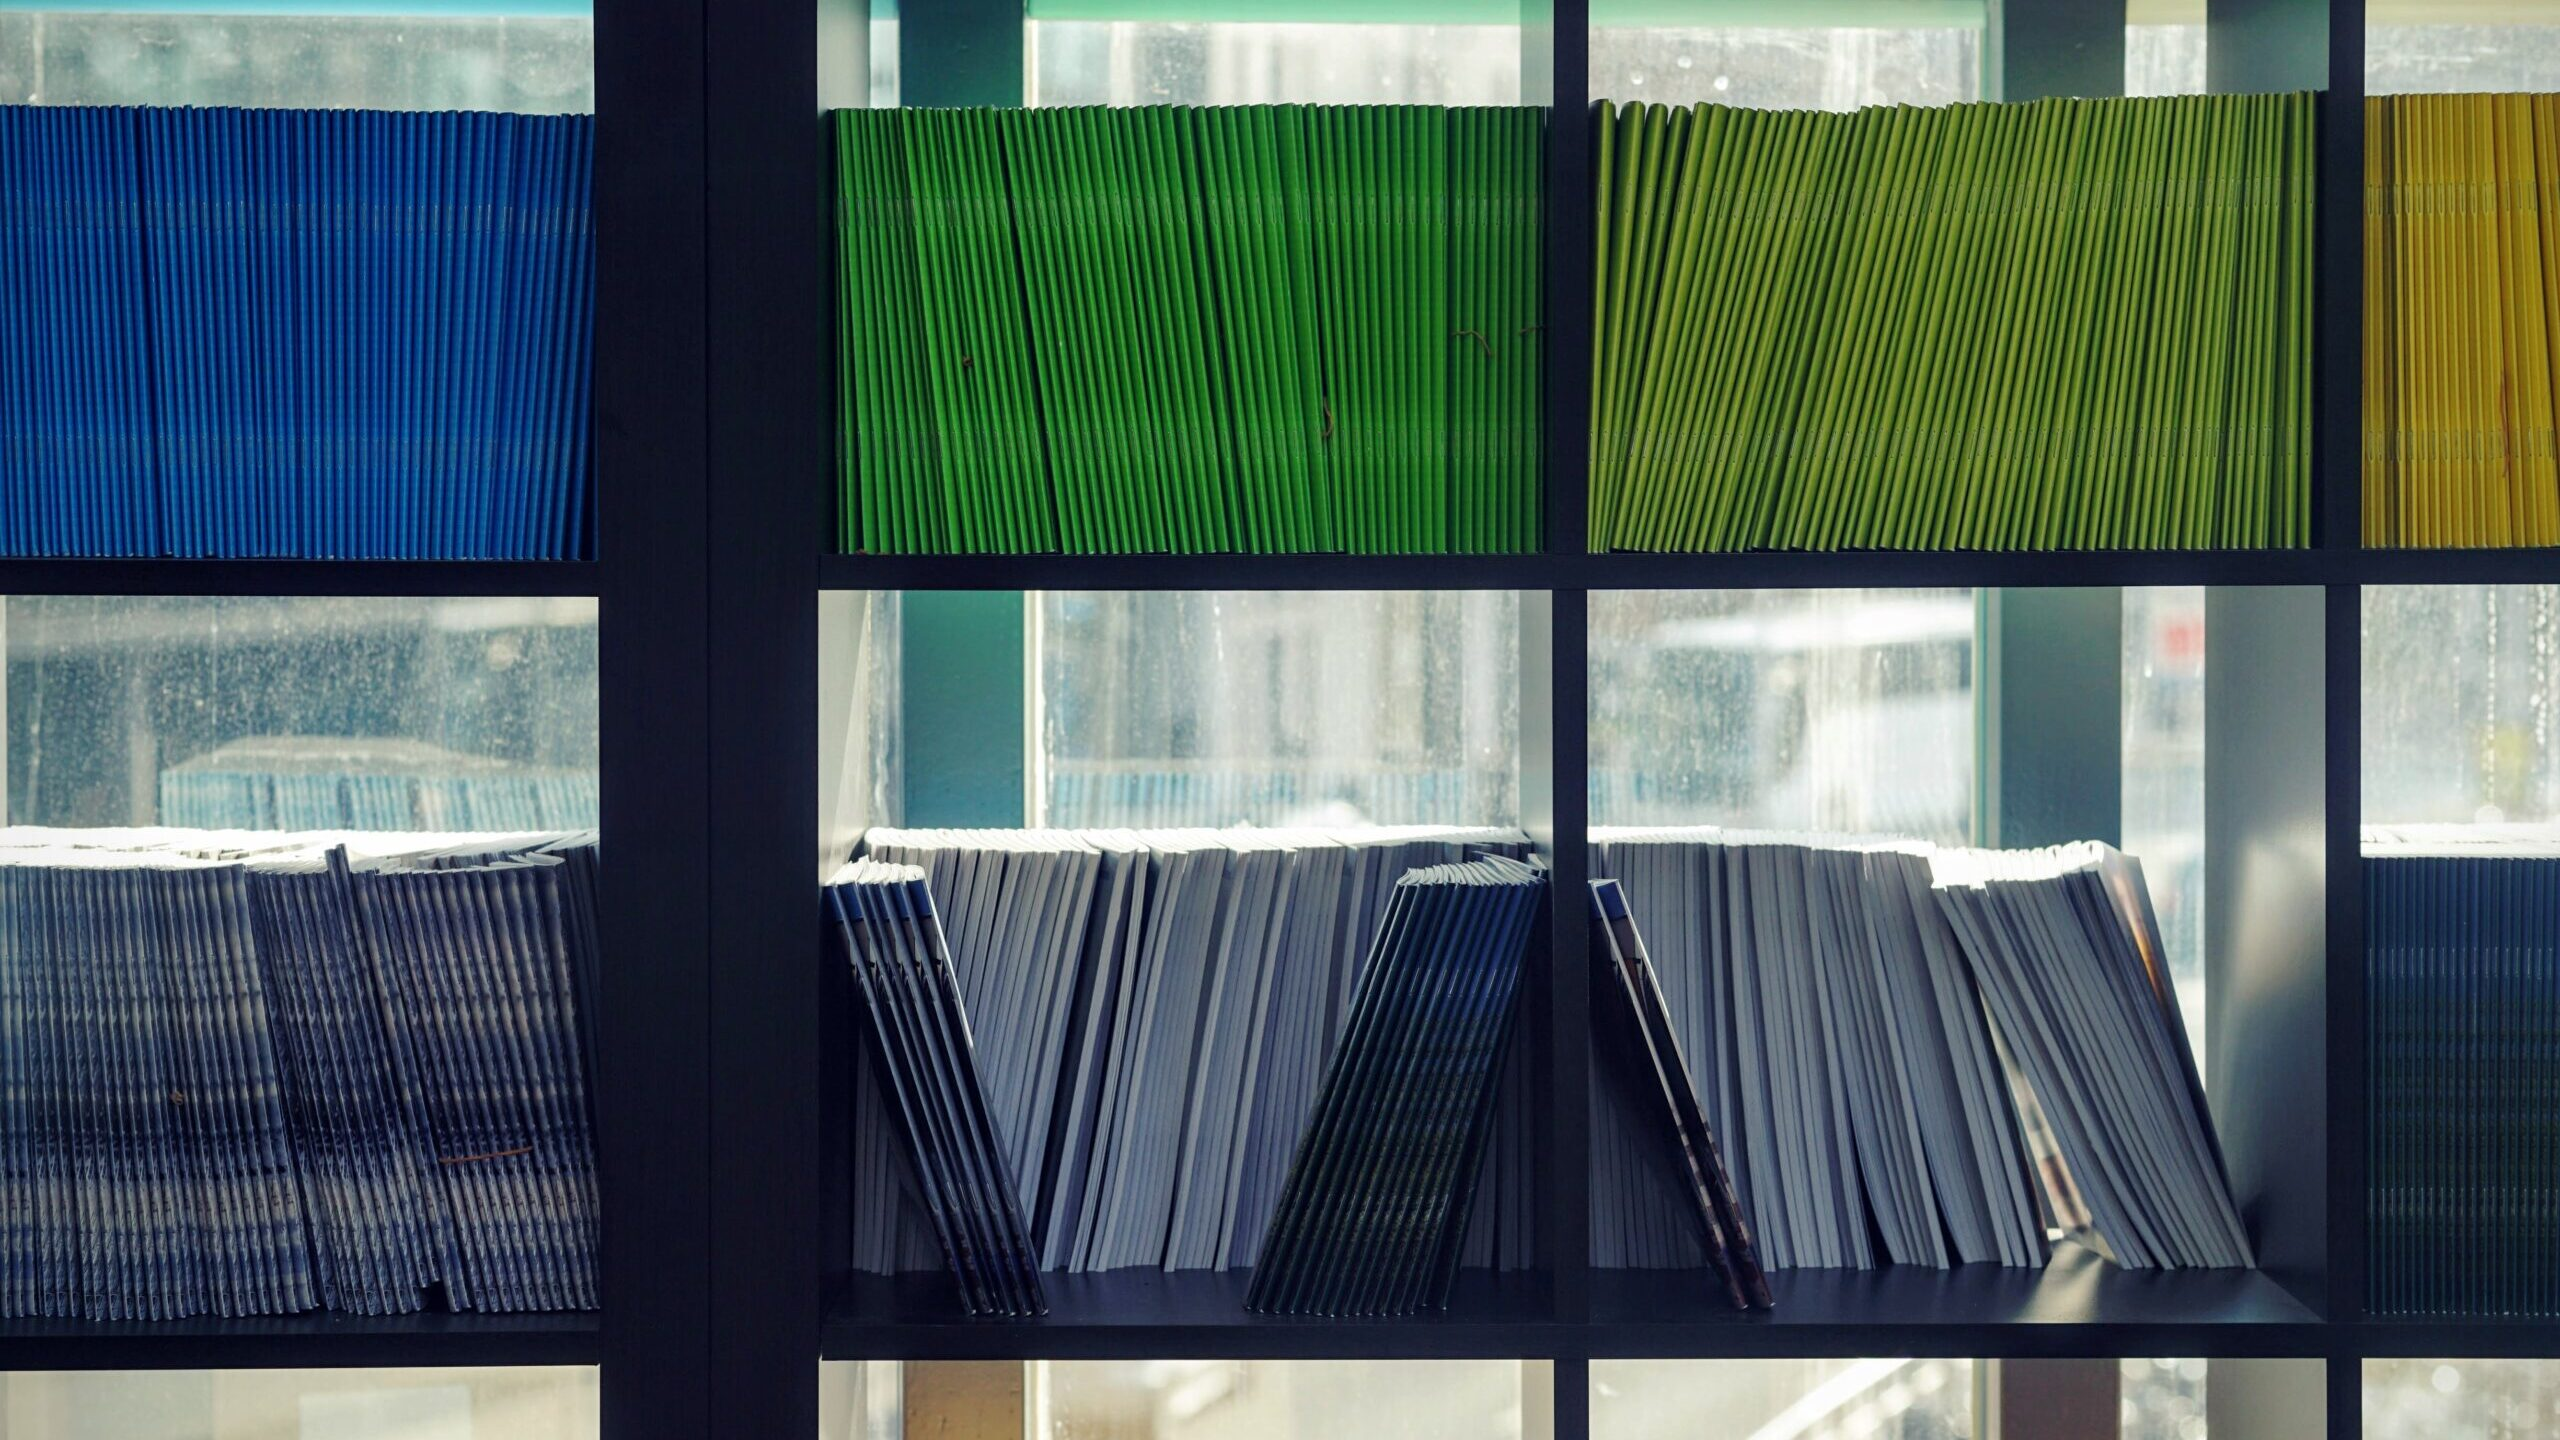 Shelves filled with color-coded document folders